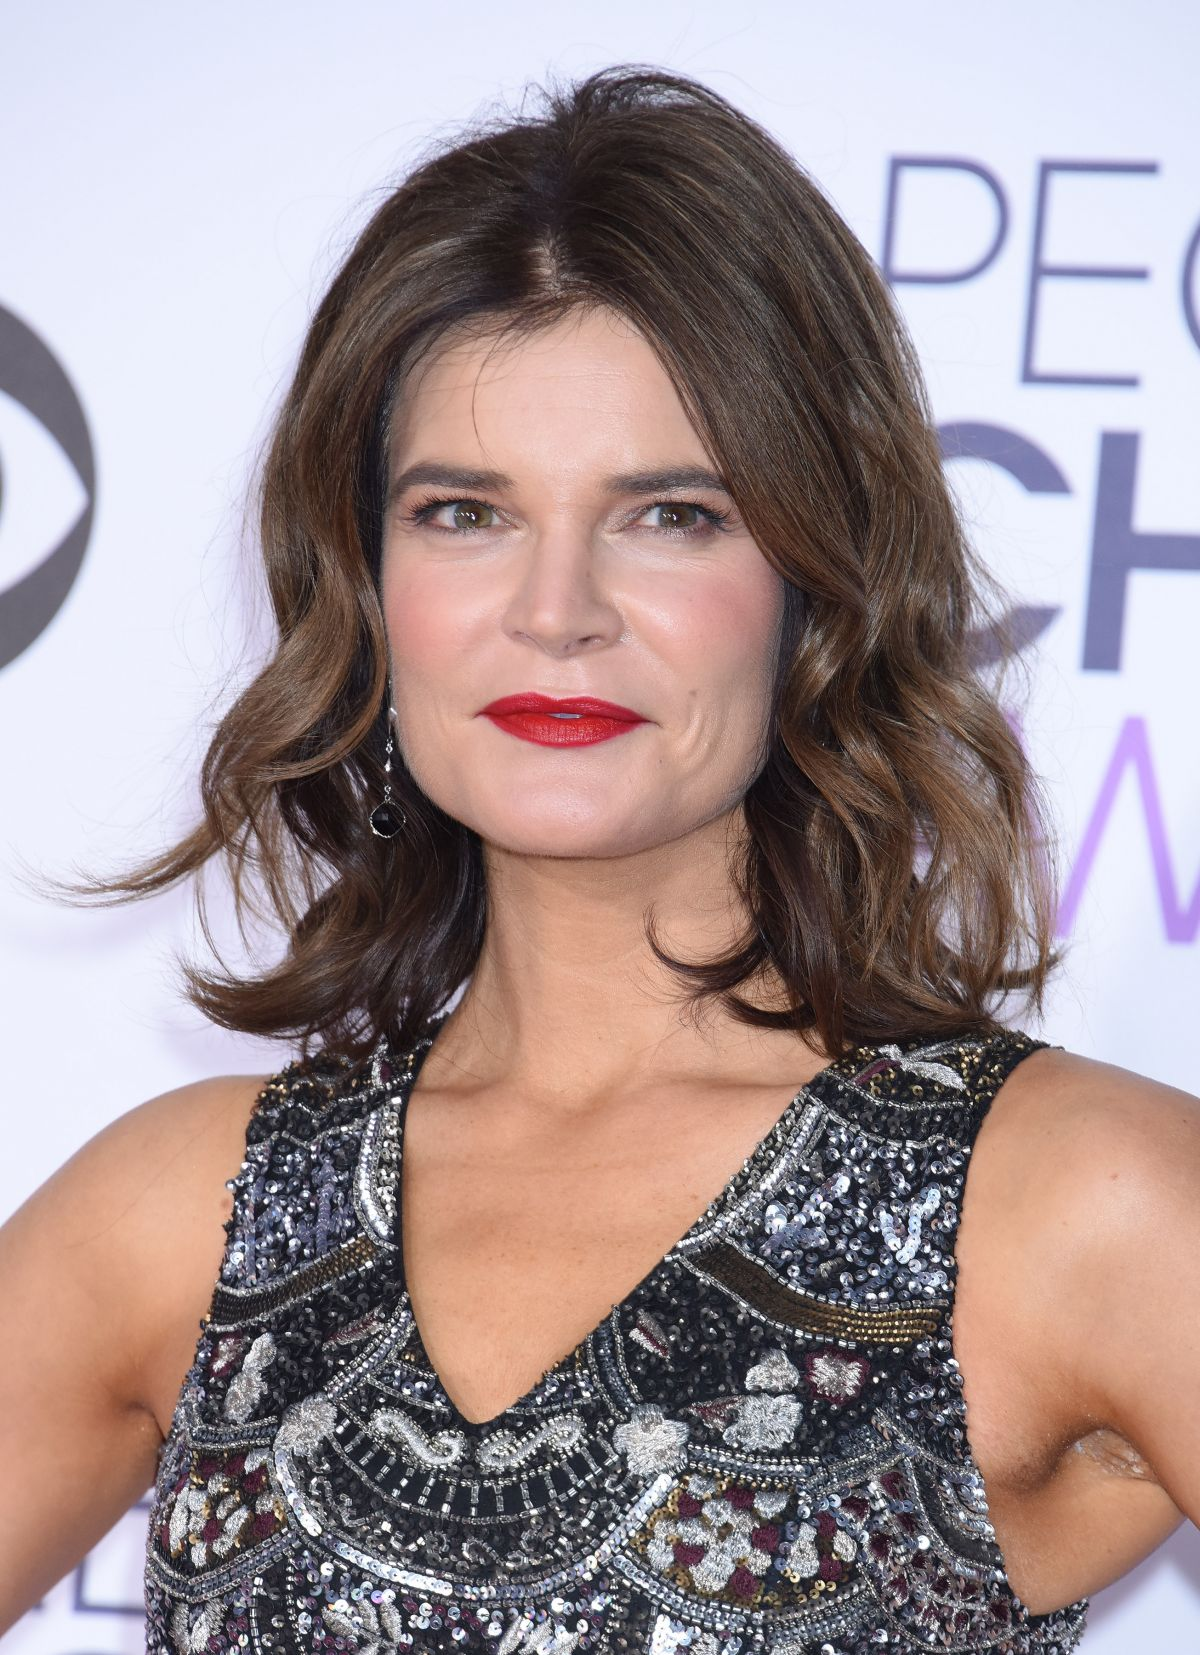 Betsy Brandt nude (99 foto and video), Topless, Sideboobs, Feet, cleavage 2018